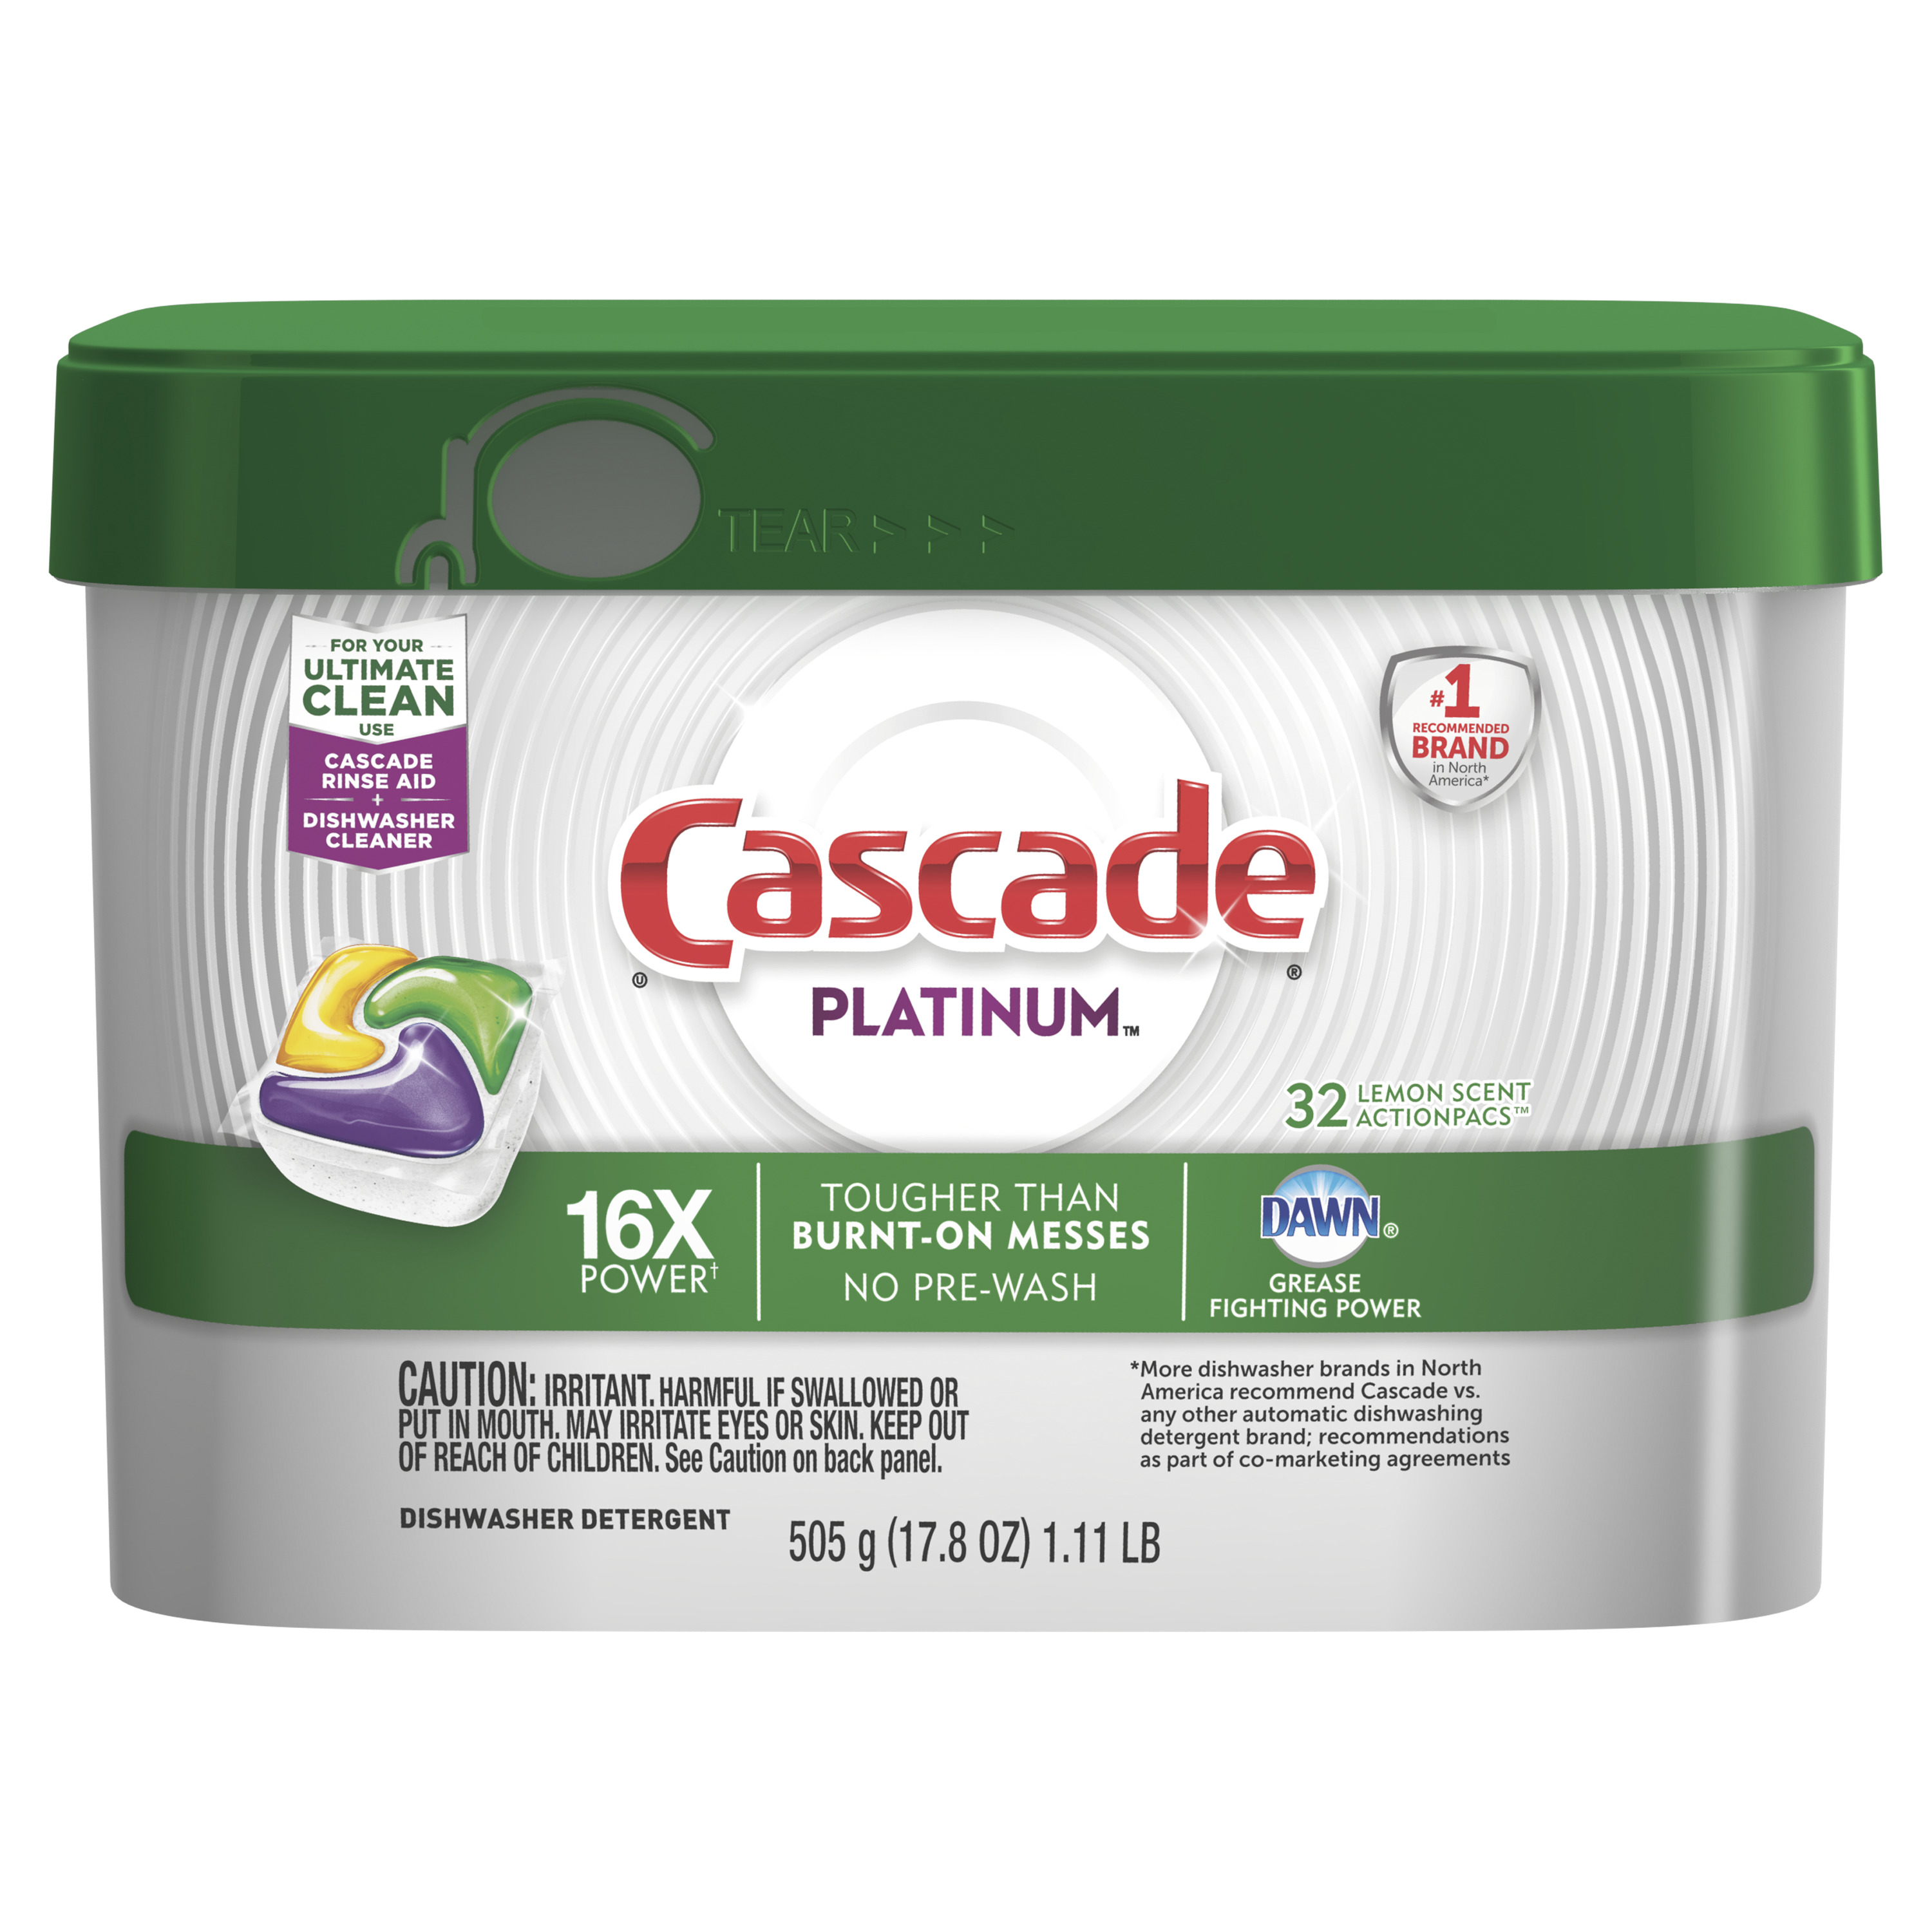 Cascade Platinum ActionPacs Dishwasher Detergent, Lemon, 32 count